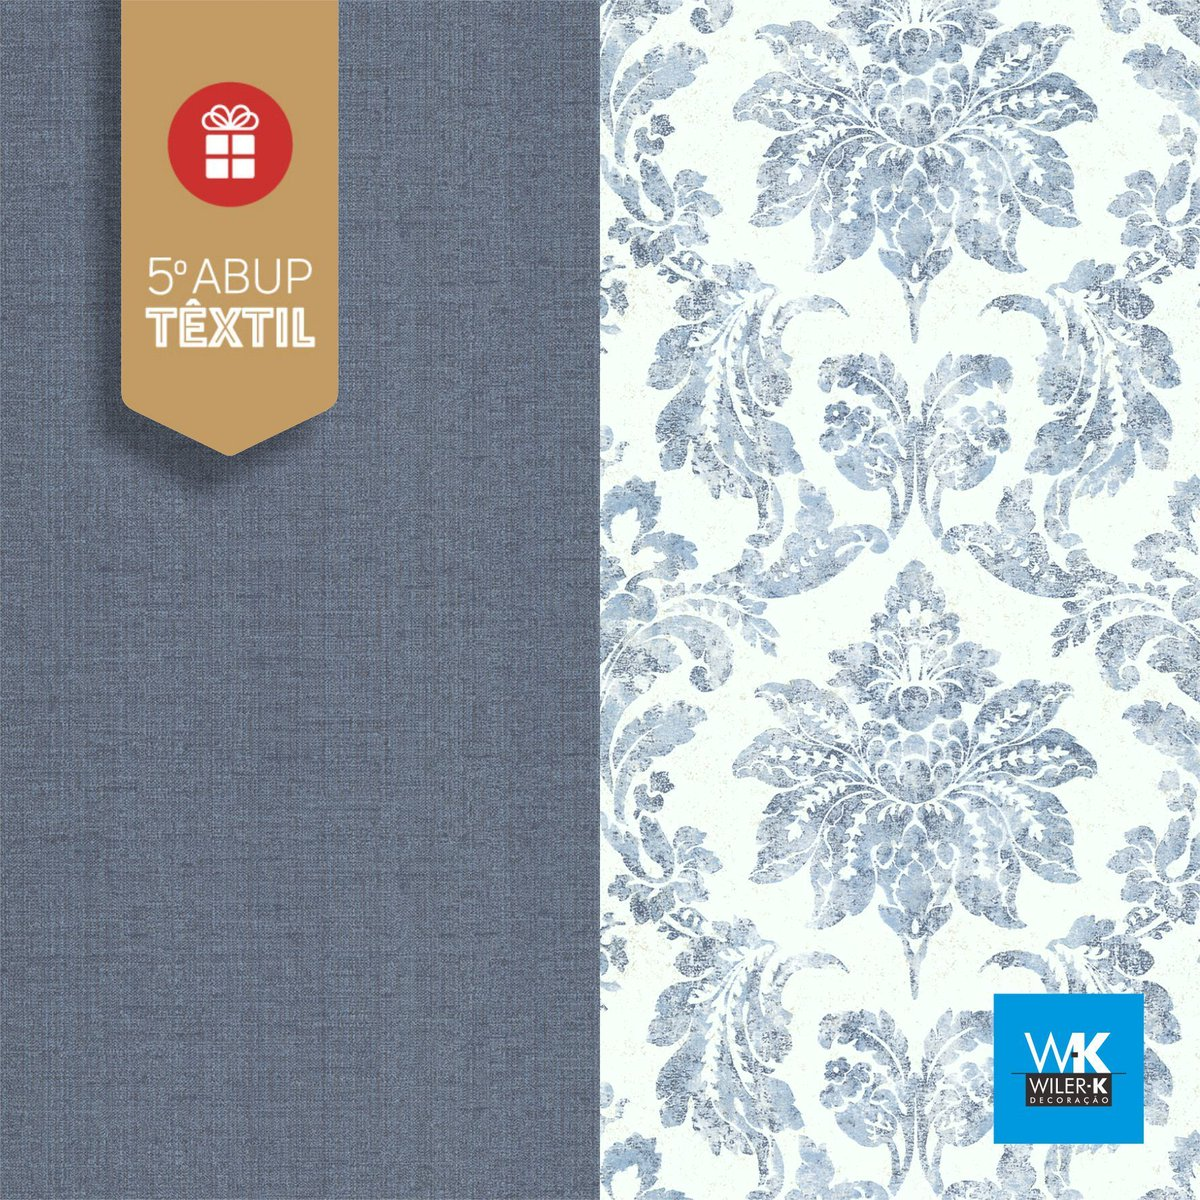 Papeldeparedevinilico Hashtag On Twitter -> Abup Textil